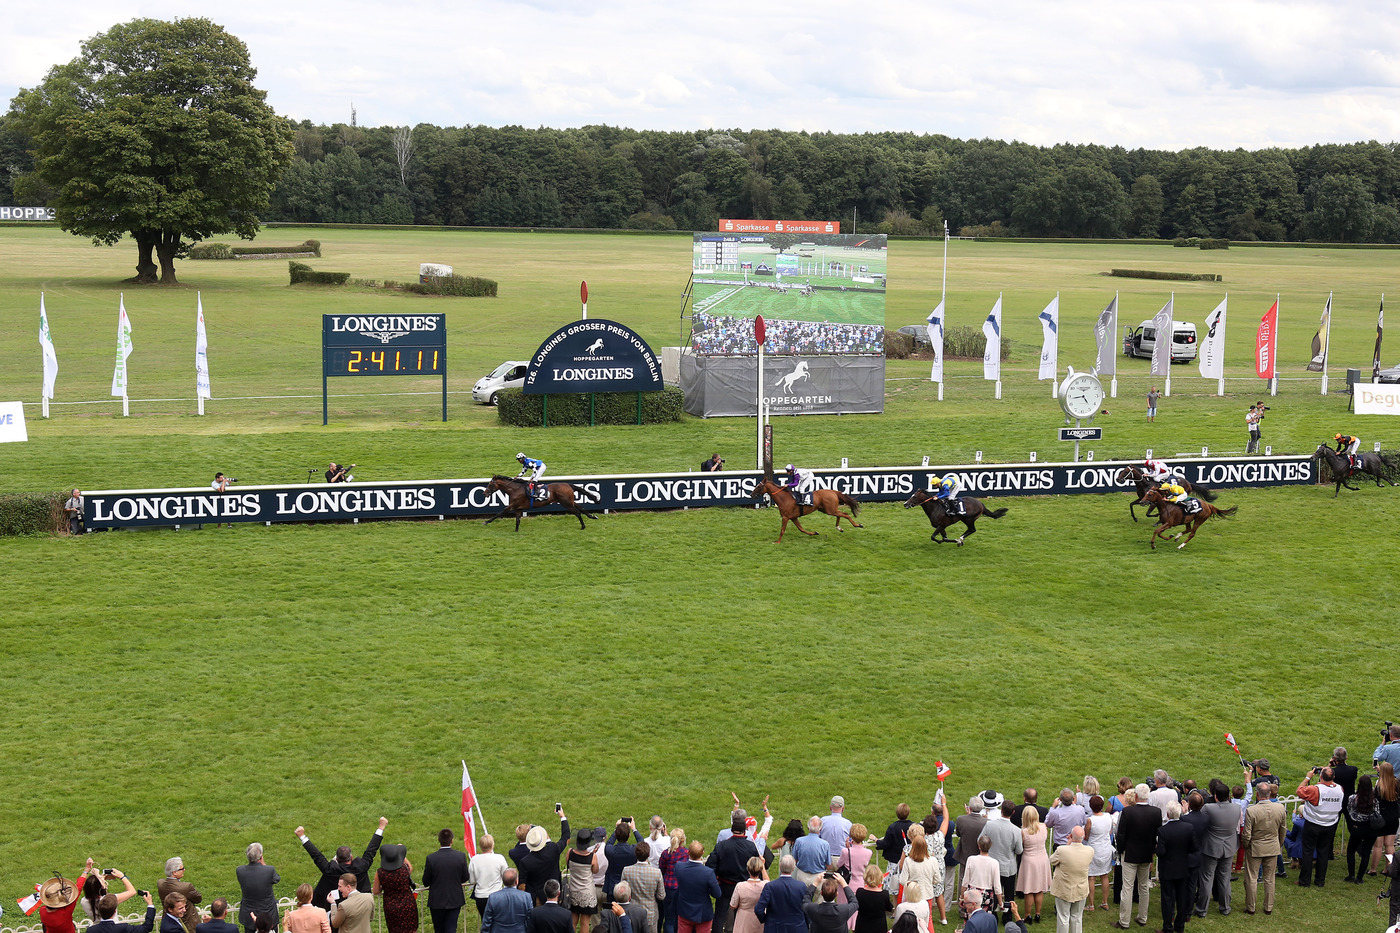 Longines Flat Racing Event: The Longines Positioning System used for the first time in Europe for the Longines Grosser Preis von Berlin 4